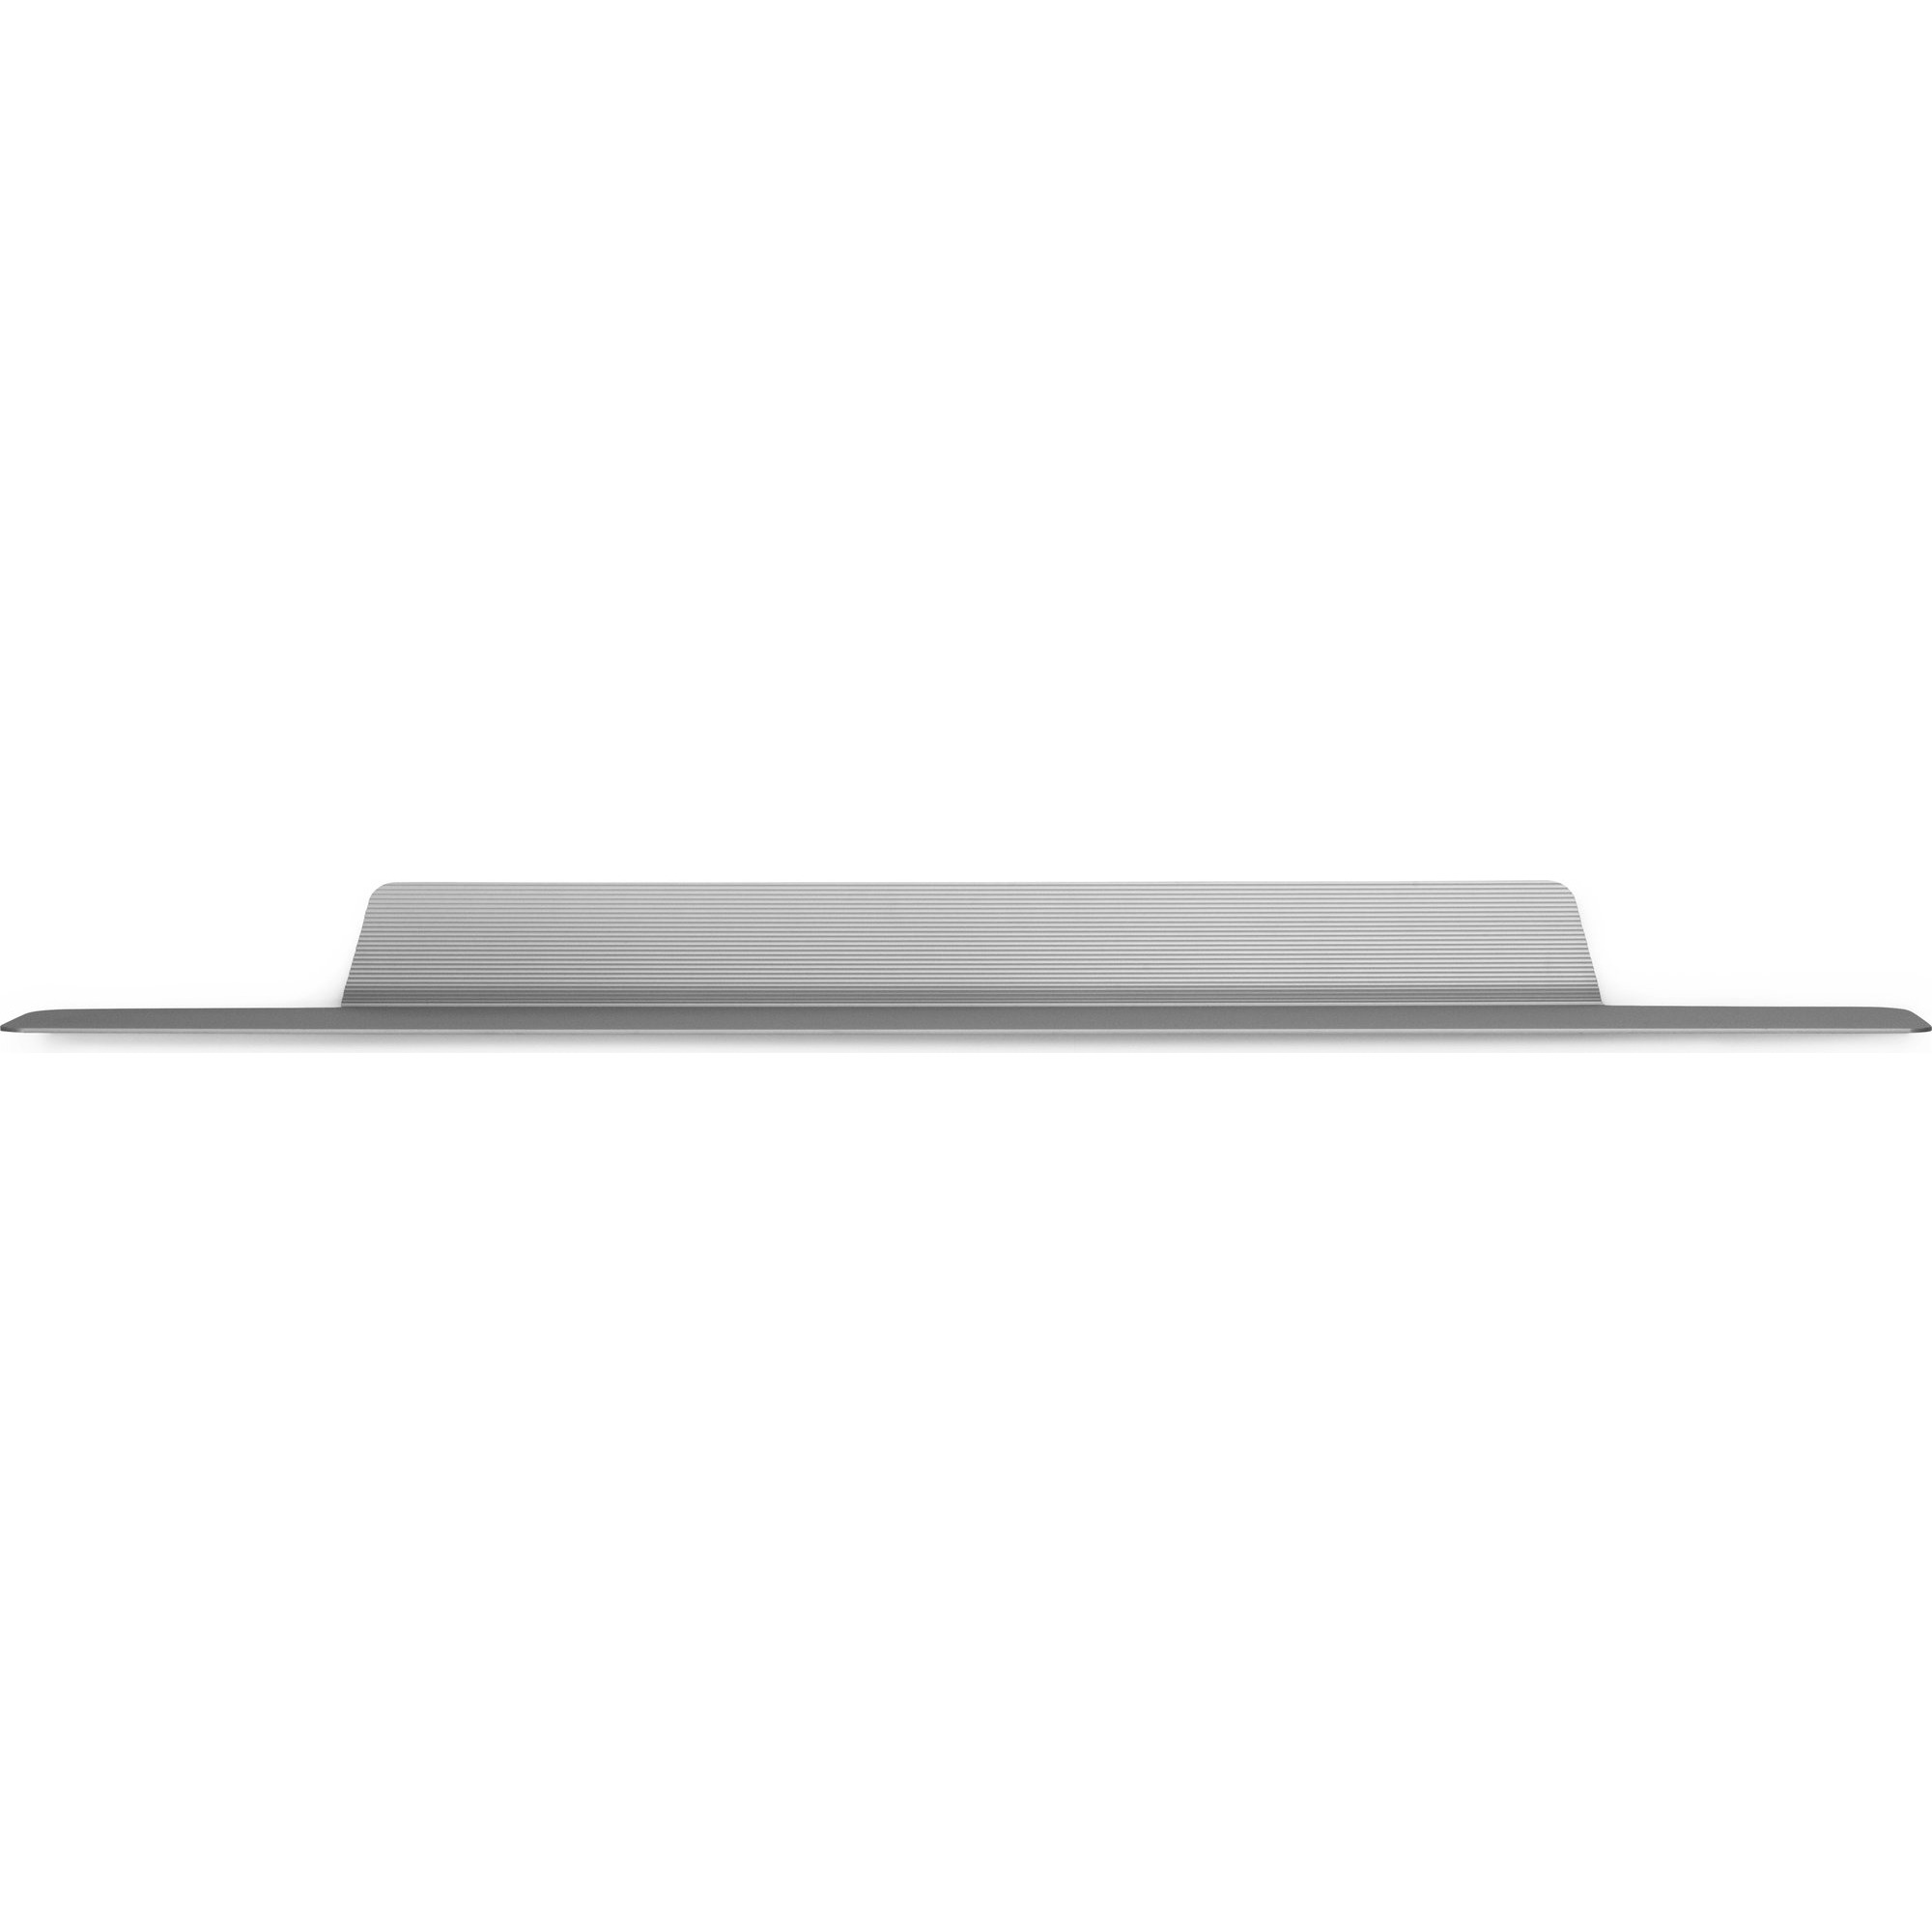 Normann Copenhagen Jet Shelf 160 cm Silver